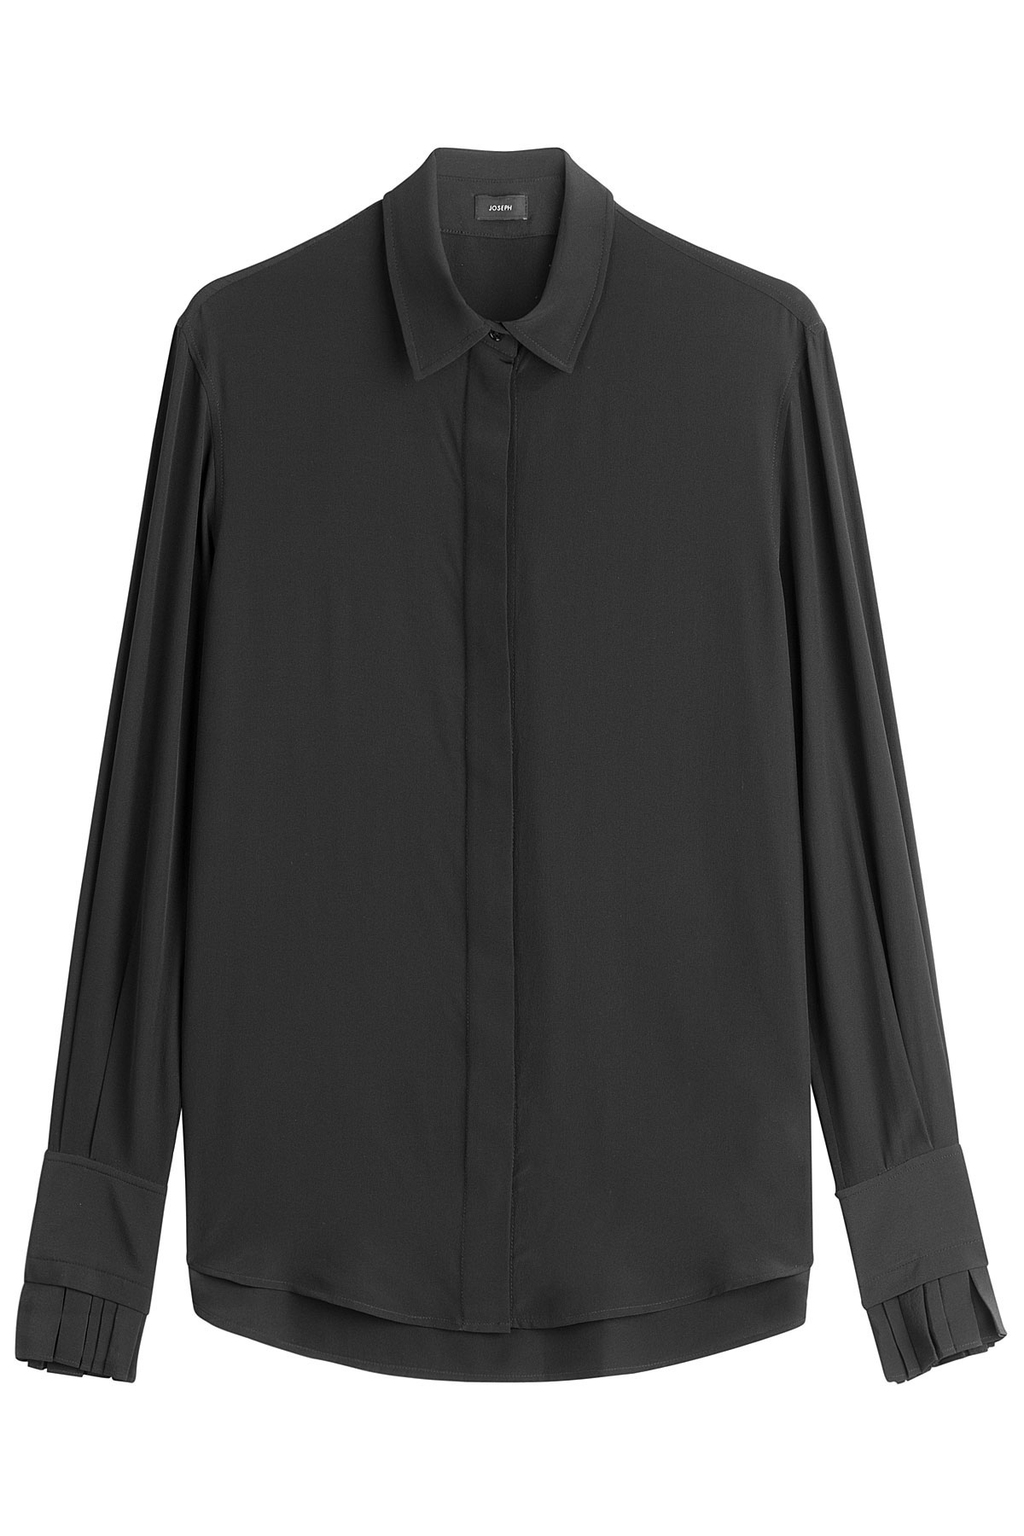 Silk Blouse - neckline: shirt collar/peter pan/zip with opening; pattern: plain; style: shirt; predominant colour: black; occasions: evening; length: standard; fibres: silk - 100%; fit: body skimming; sleeve length: long sleeve; sleeve style: standard; texture group: silky - light; pattern type: fabric; season: s/s 2016; wardrobe: event